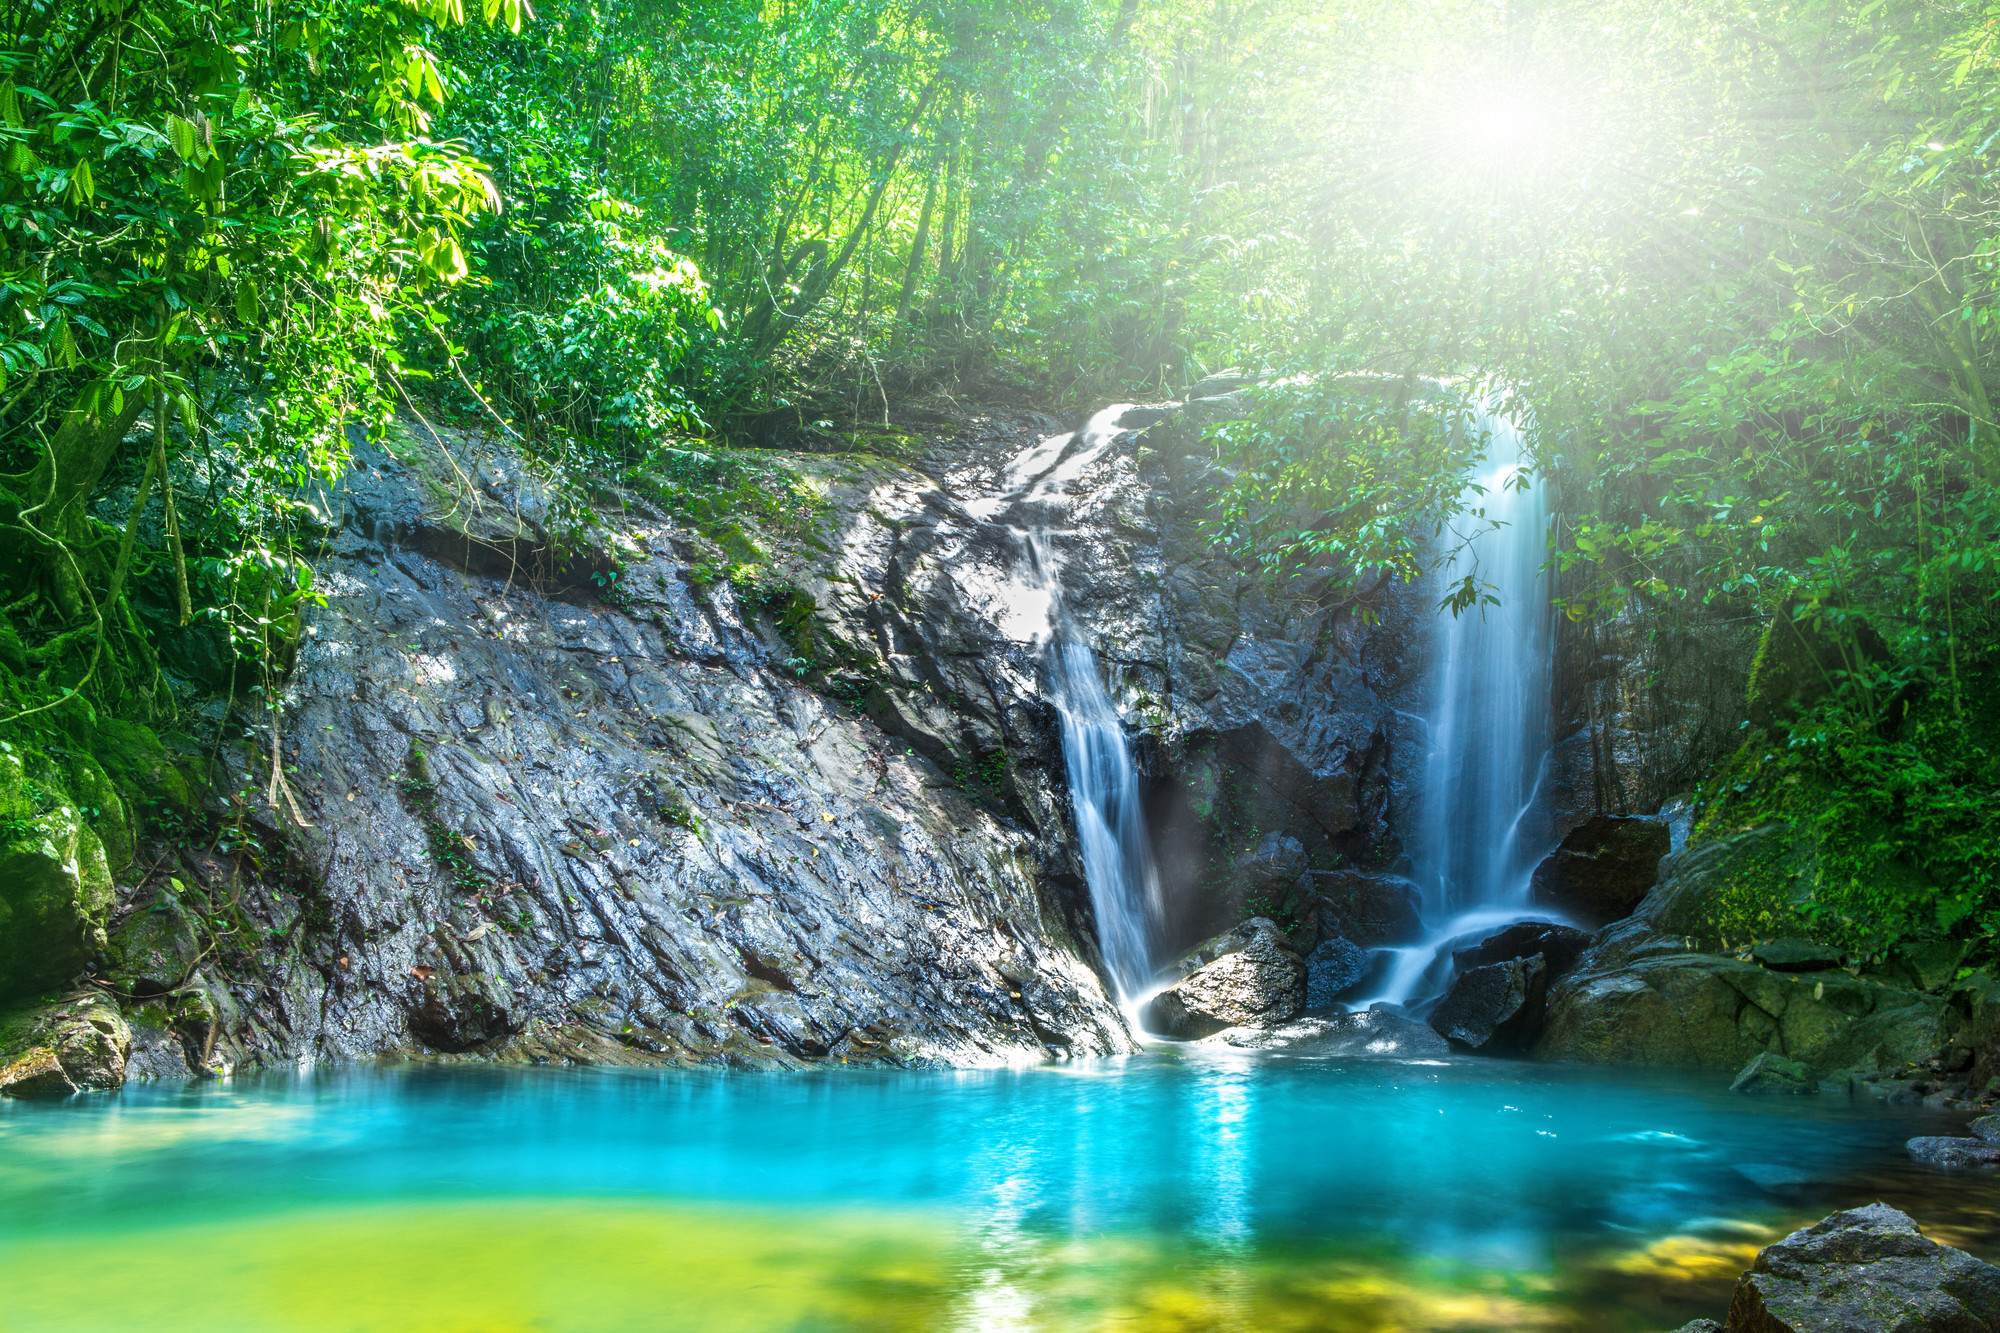 Tropical waterfall in the forest,Ton Chong Fa in khao lak Phangnga South of Thailand